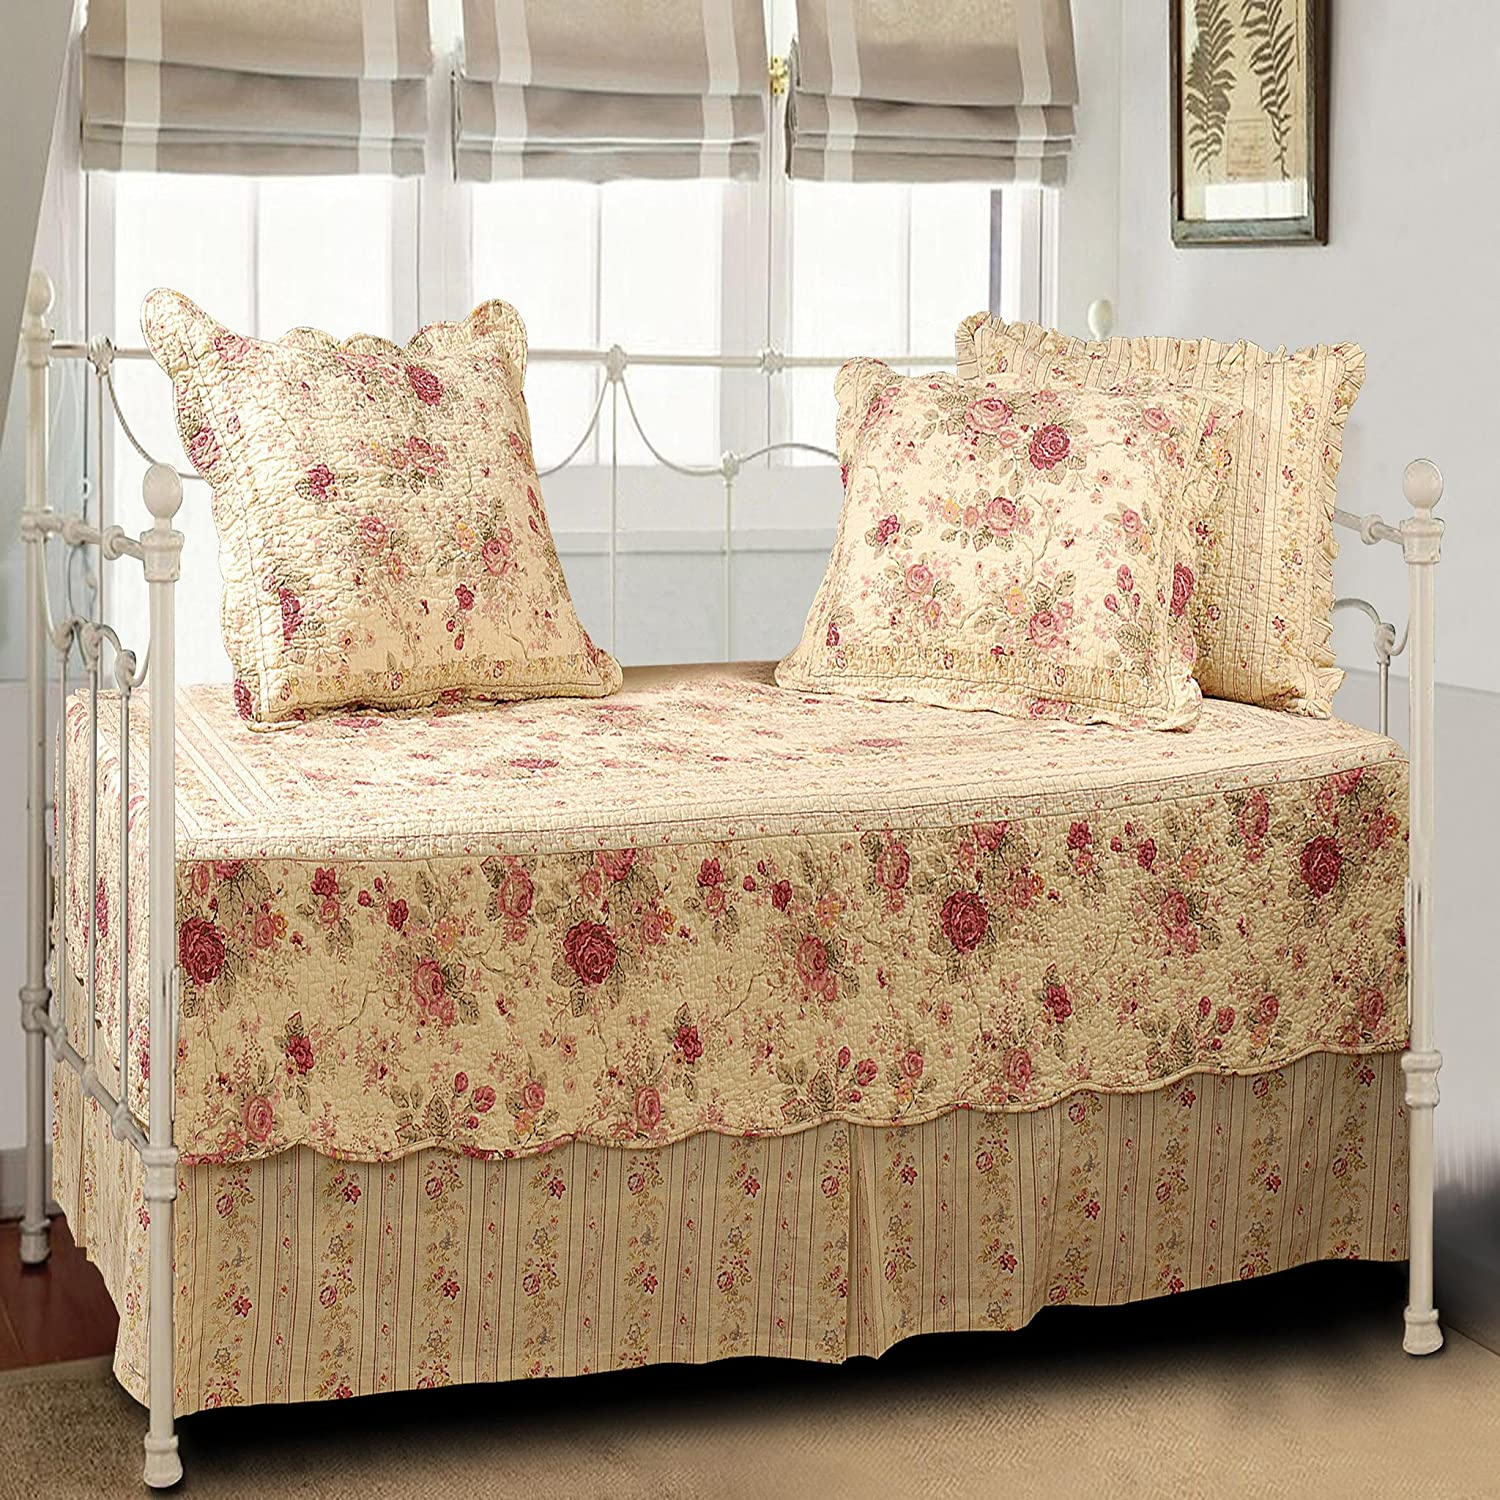 Overstock daybed bedding home design ideas - Greenland Home Antique Rose Quilted Daybed Set